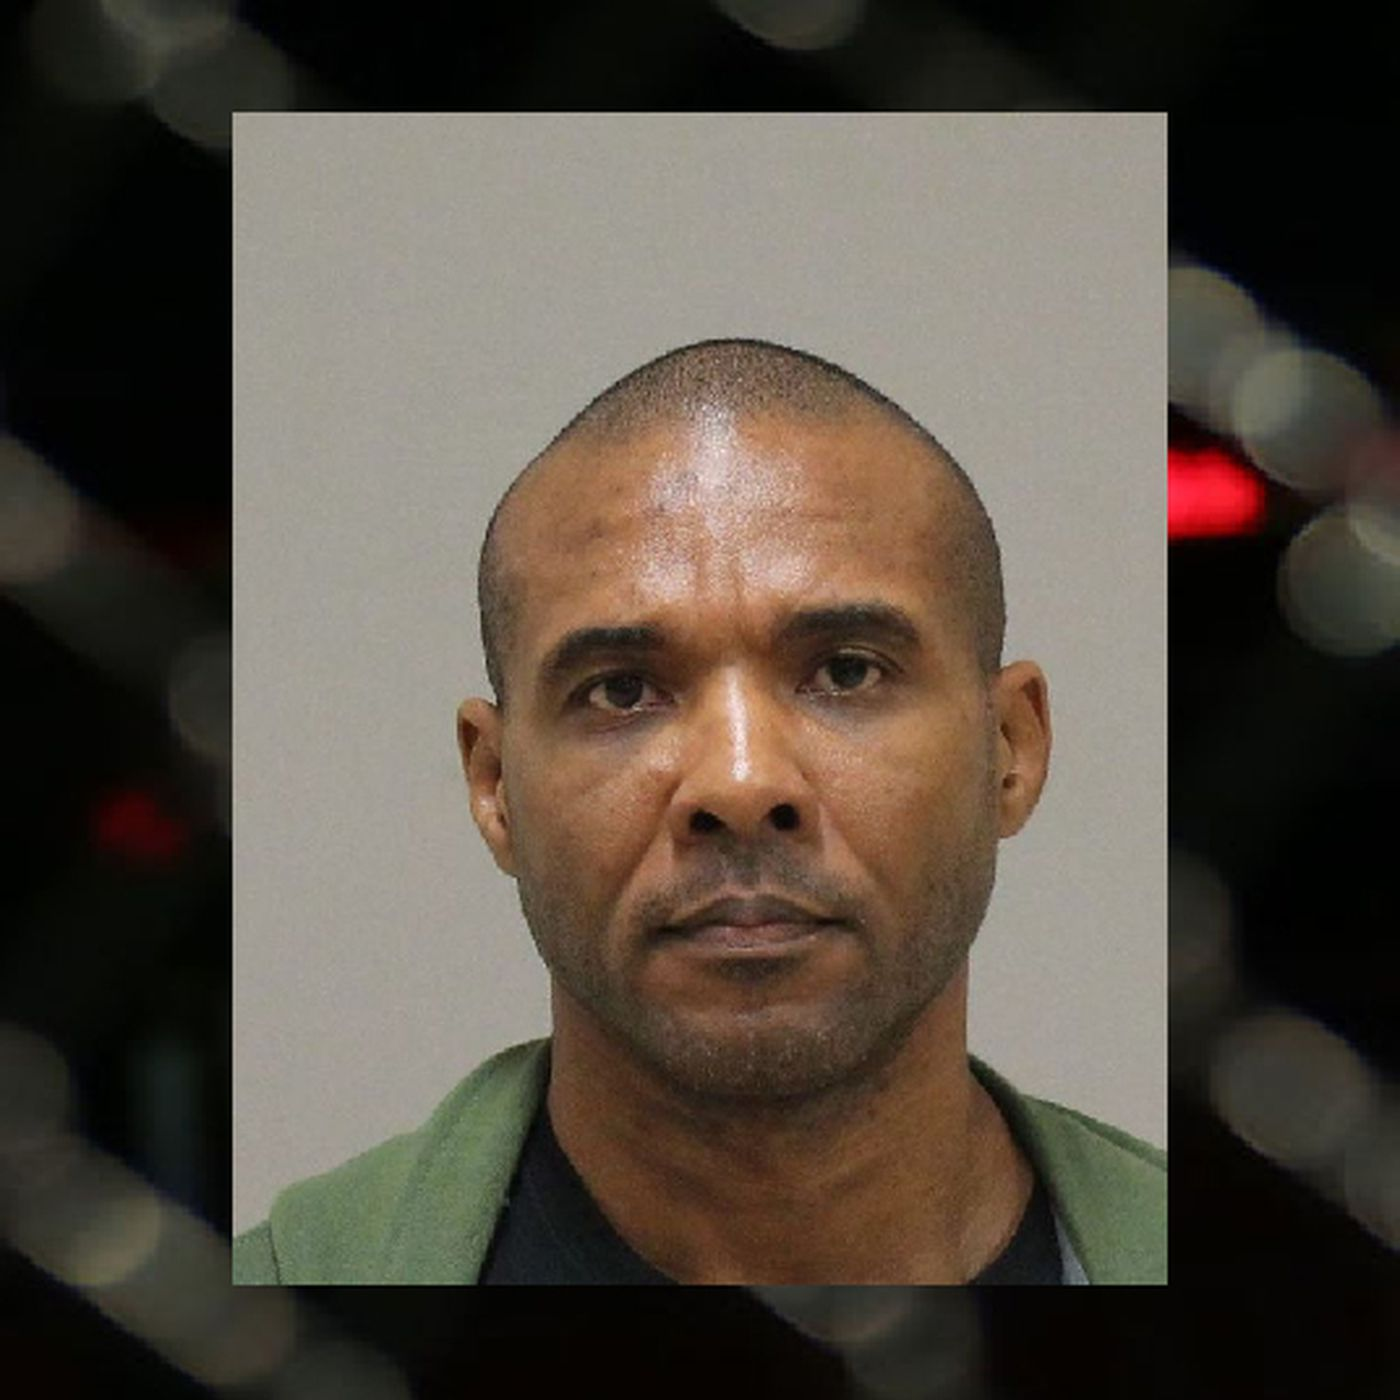 MMA fighter Cedric Marks, accused of two murders, captured